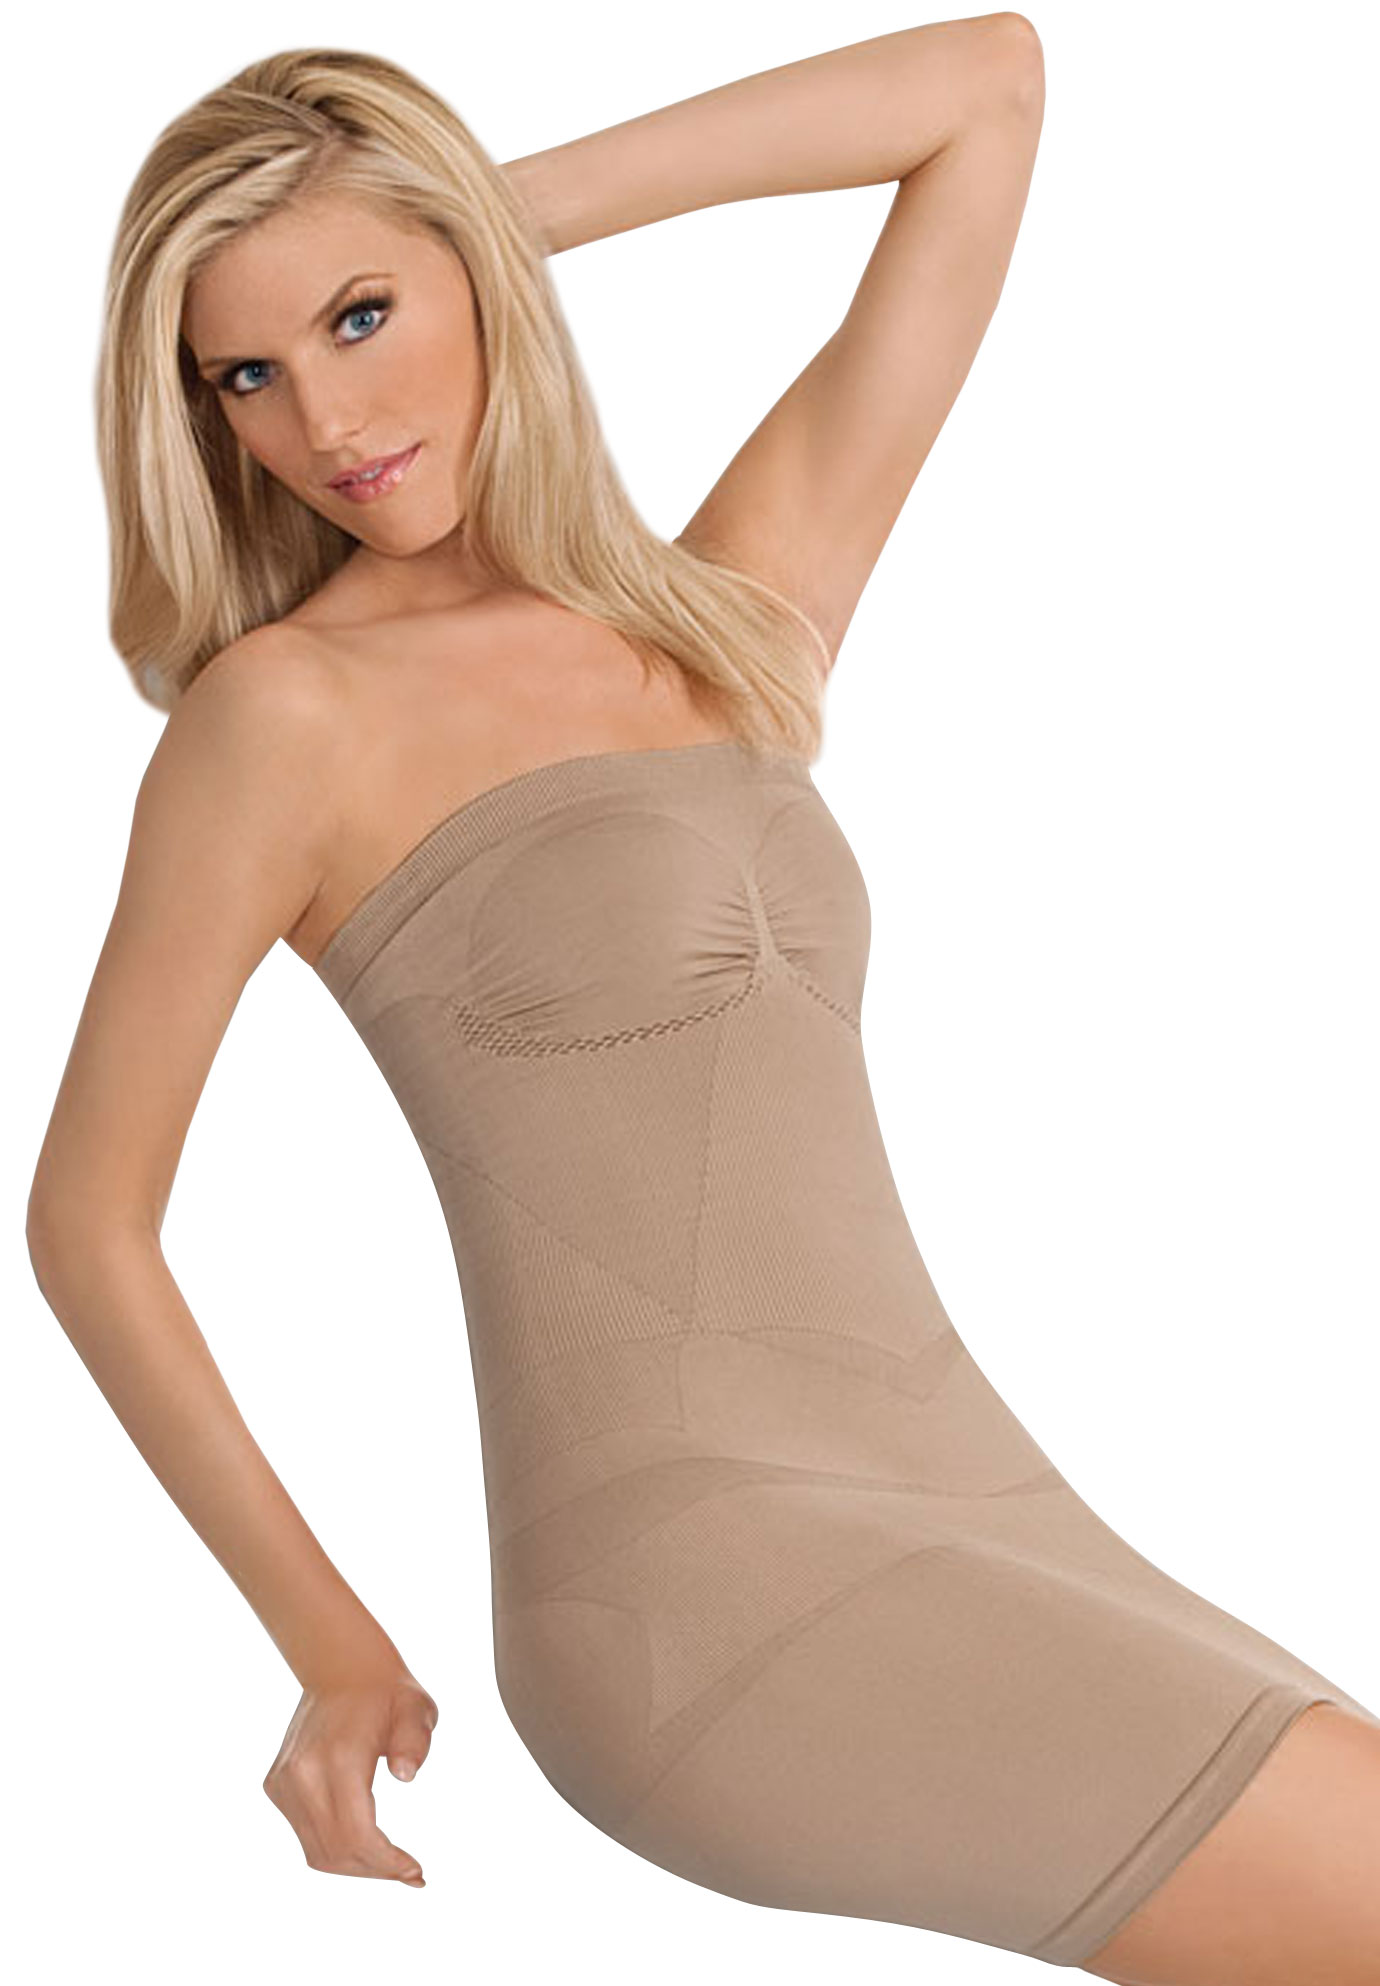 Julie France Strapless Dress Shaper, NUDE, hi-res